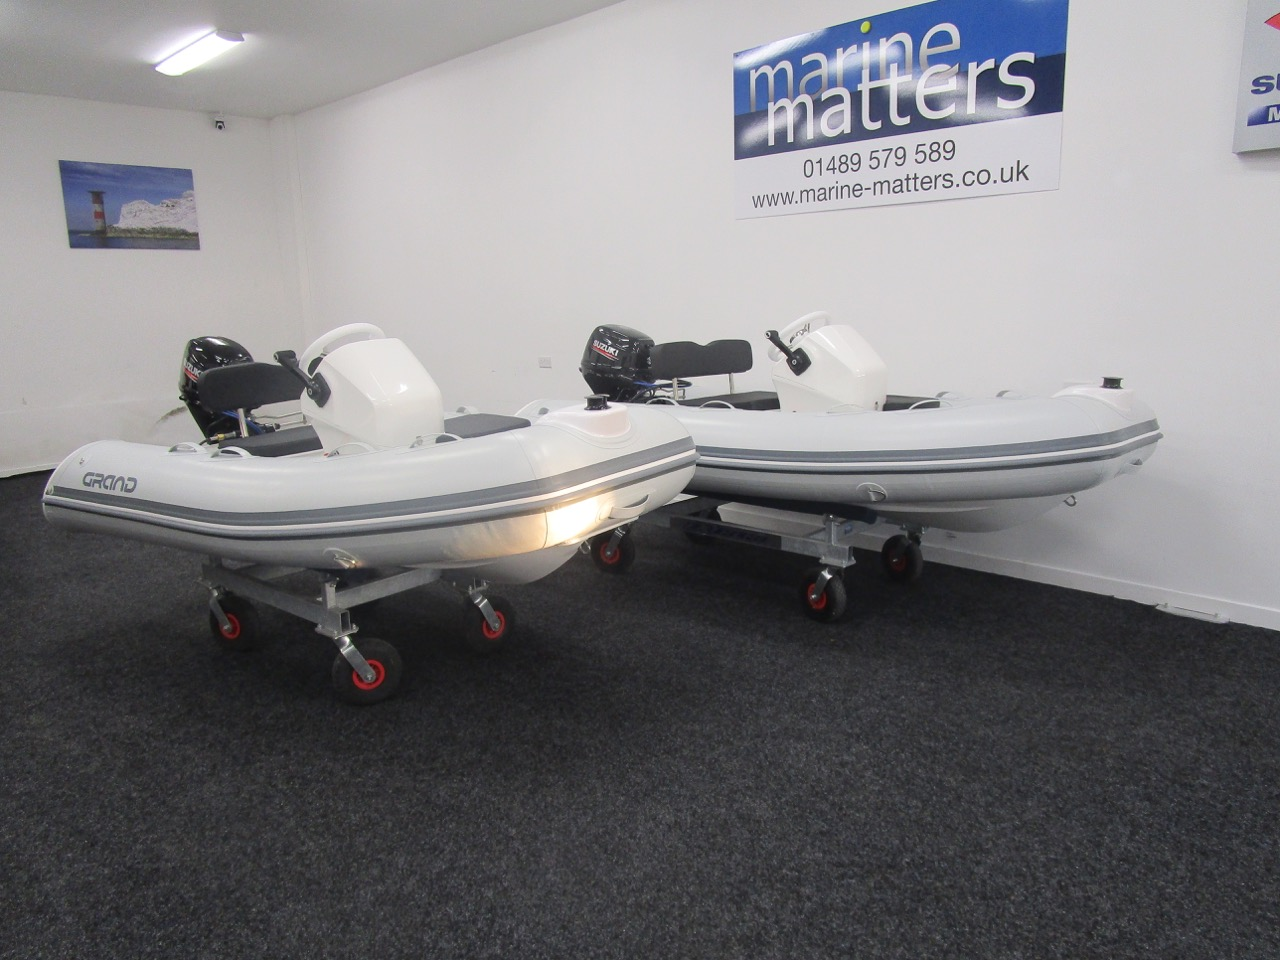 GRAND S330 & S300 RIB tenders together